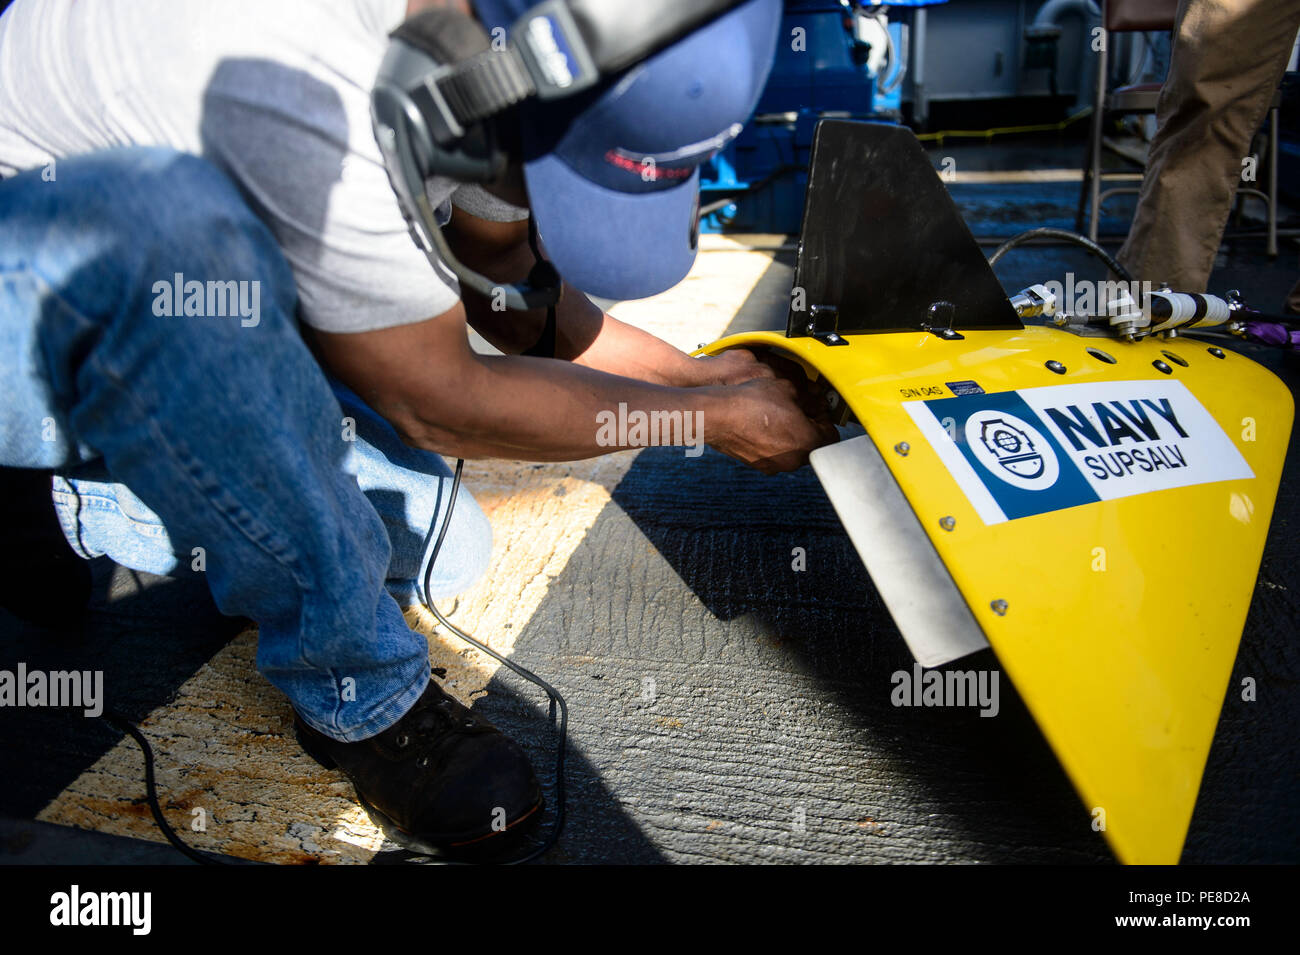 151023-N-RZ218-045   BAHAMAS (Oct. 23, 2015) Olden Glover, a contractor with Phoenix International Incorporated, prepares the tow pinger locater 25 (TPL 25) for the upcoming salvage mission aboard USNS Apache (T-ATF 172). USNS Apache departed Norfolk, Va., Oct. 19, to begin searching for wreckage from the missing U.S. Flagged merchant vessel El Faro. The ship is equipped with several pieces of underwater search equipment, including a voyage data recorder locator, side-scan sonar and an underwater remote operated vehicle. The Navy's mission will be to first locate the ship and, if possible, to  - Stock Image